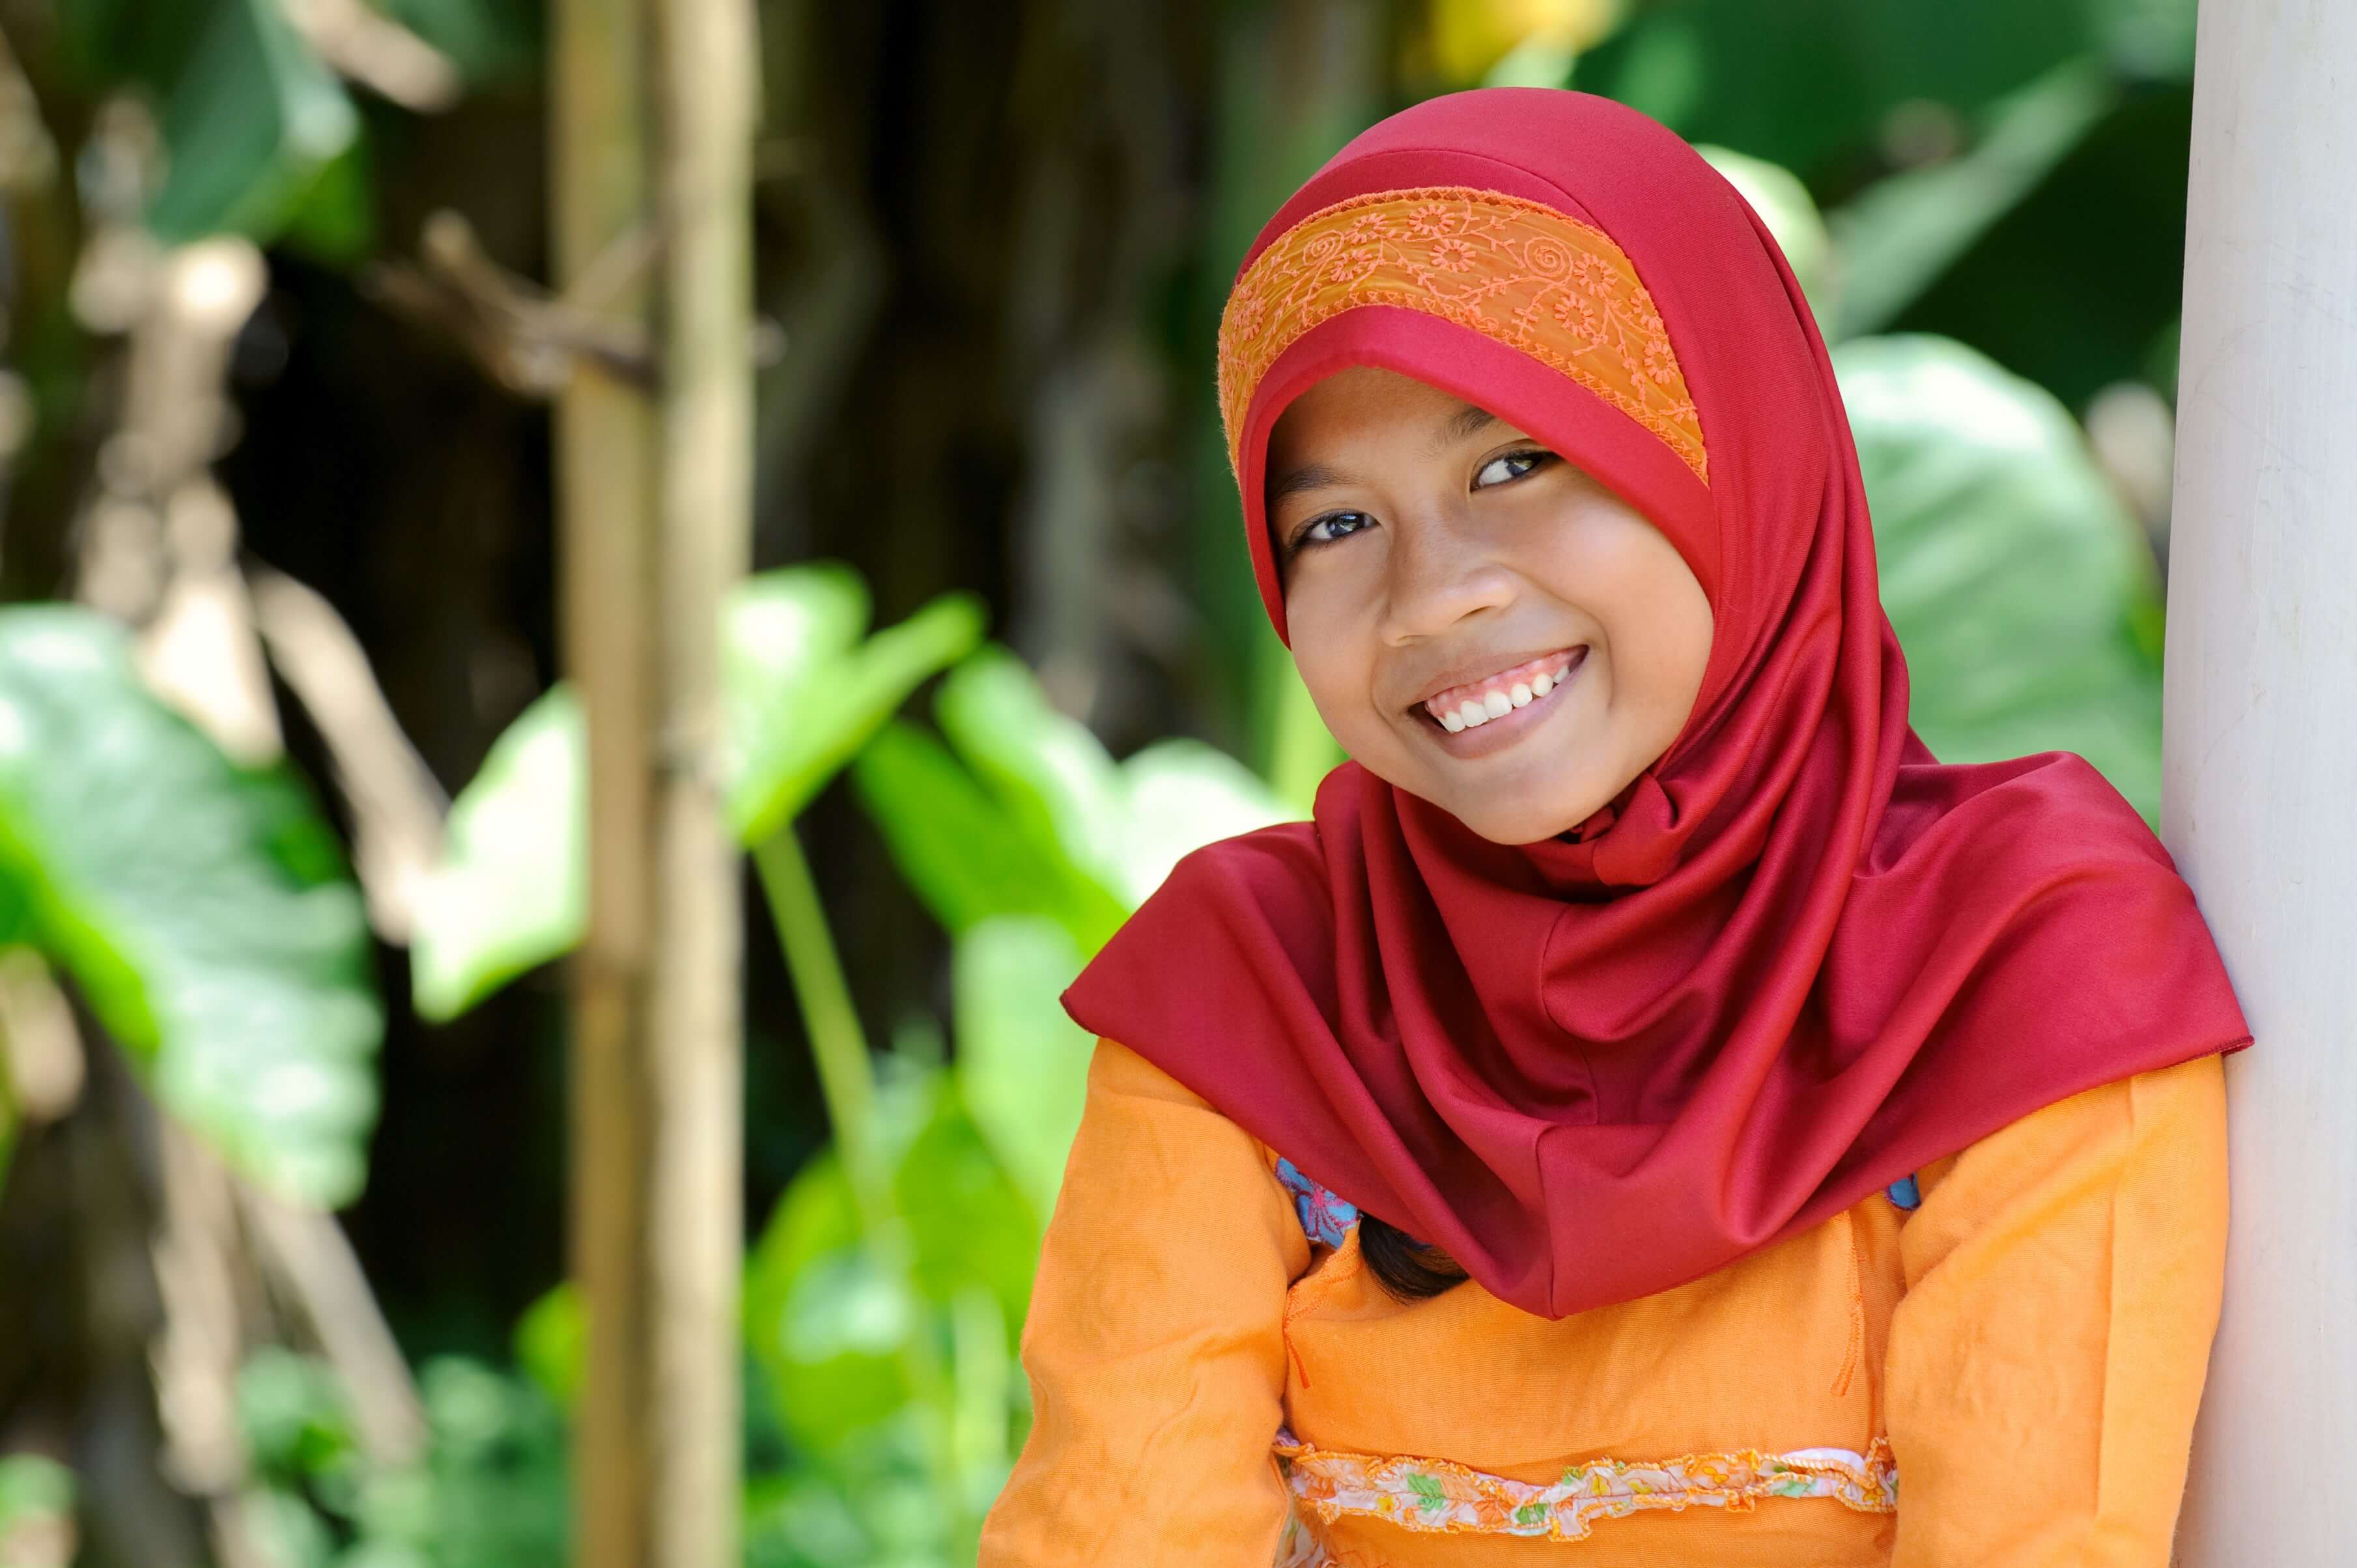 A girl poses with a wide smile.